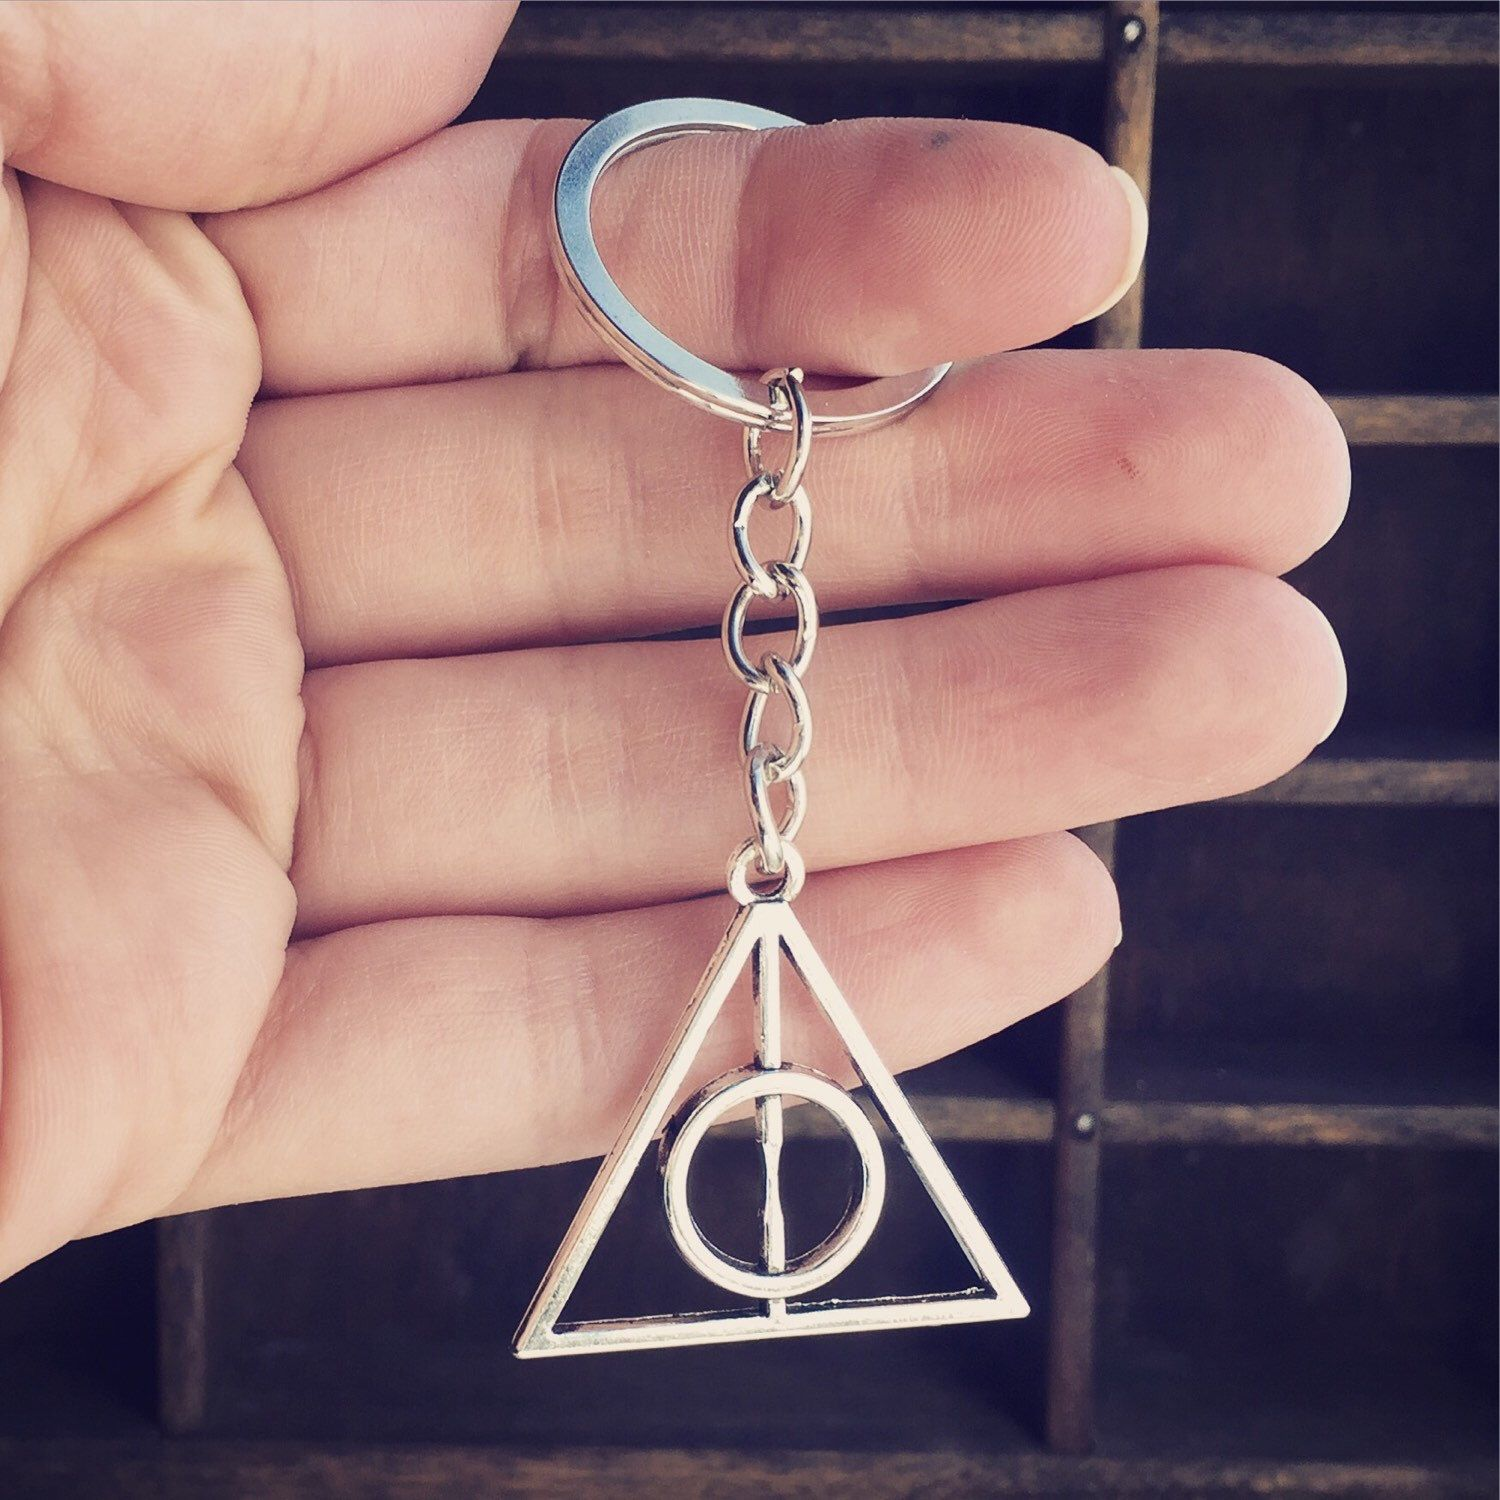 Keychain harry potter and the deathly hallows symbol book movie keychain harry potter and the deathly hallows symbol book movie lover gift party favor biocorpaavc Images